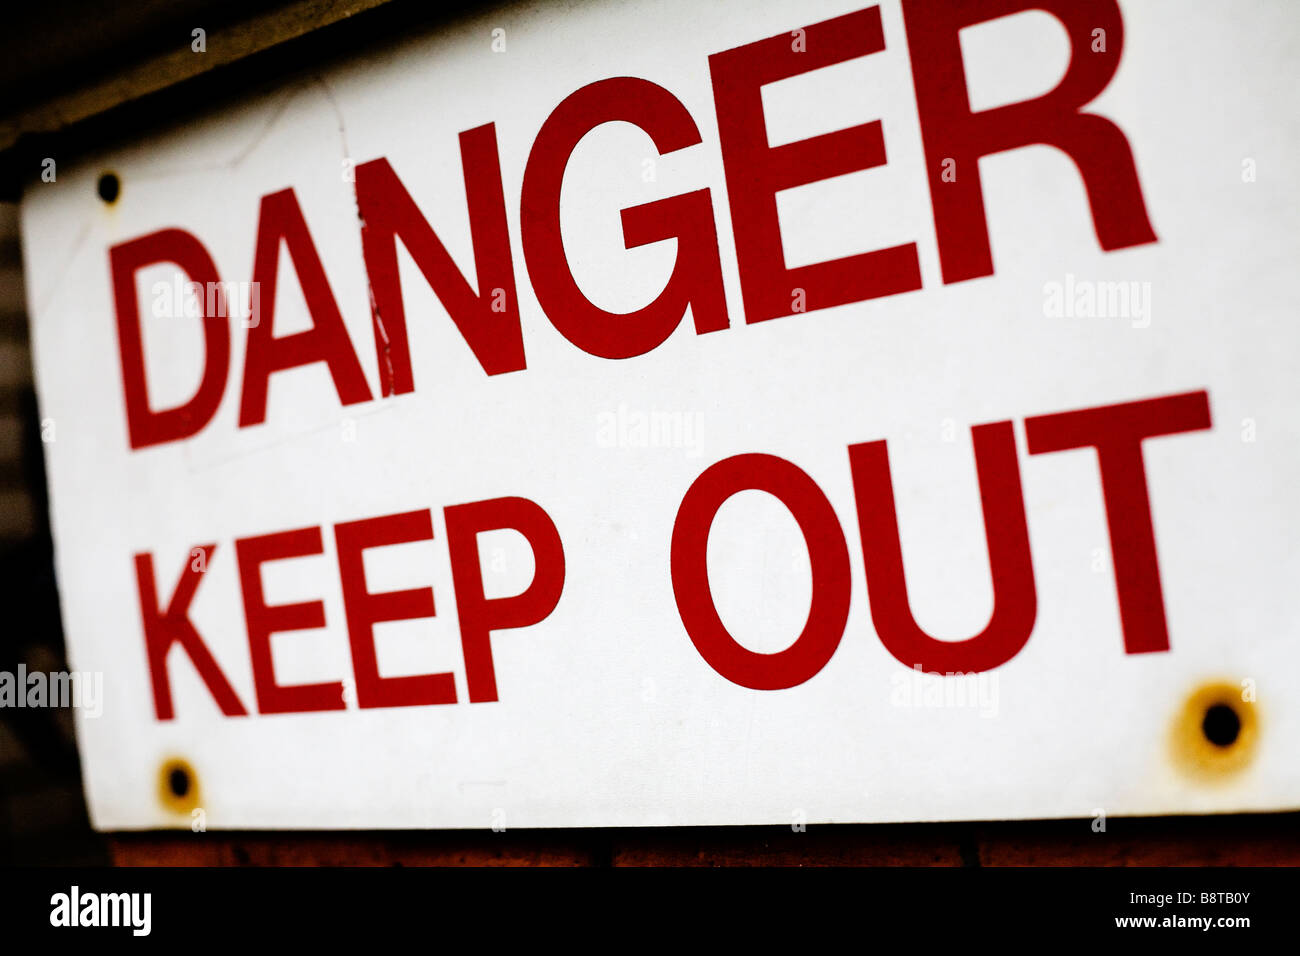 A Danger Keep Out sign. - Stock Image